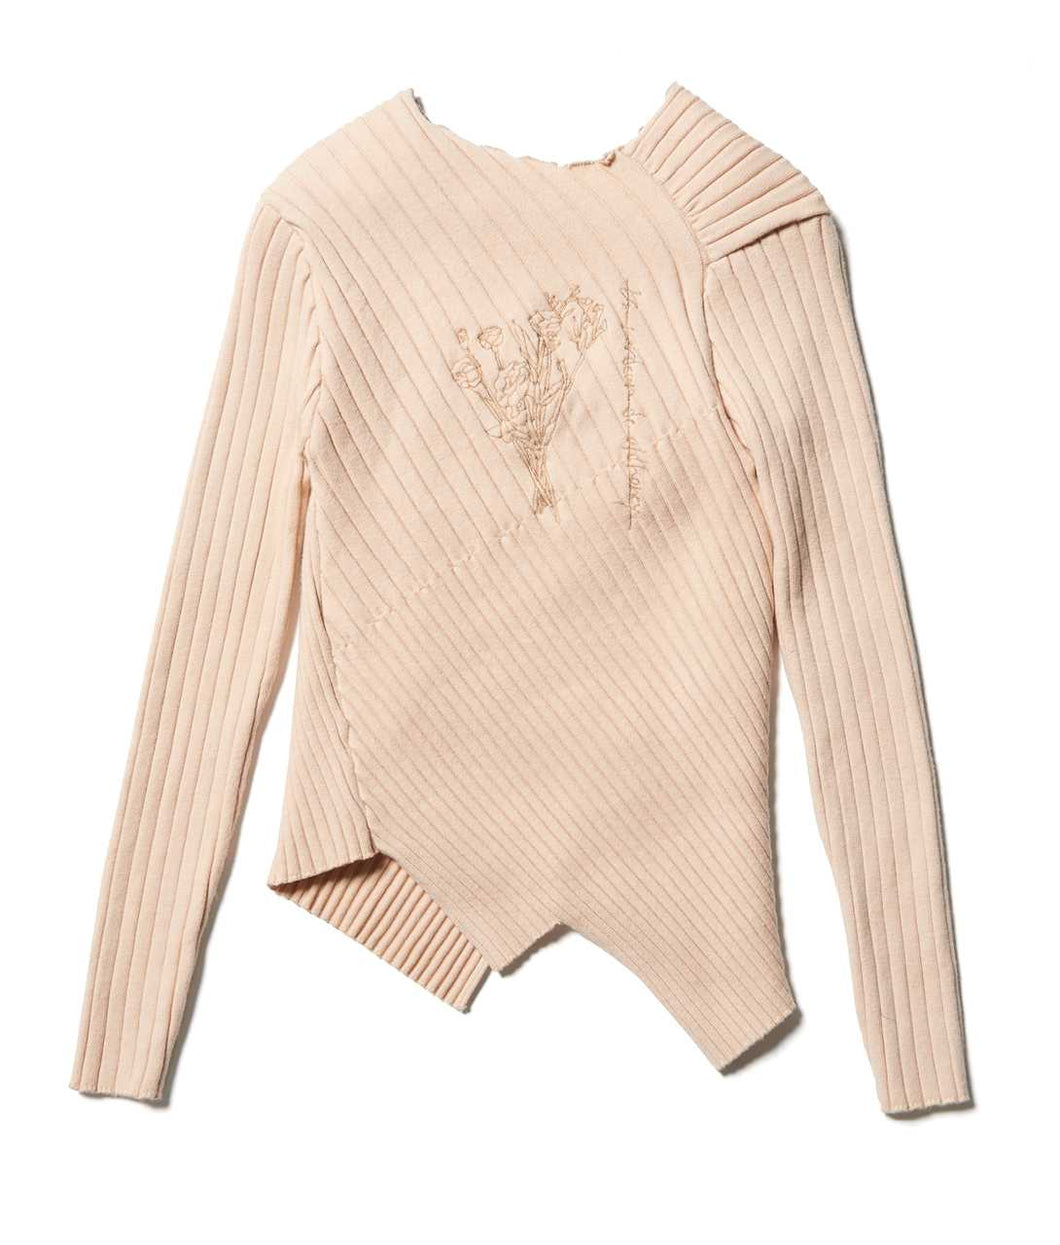 〈old honey〉23℃ TOPS / 23℃トップス(BEIGE)